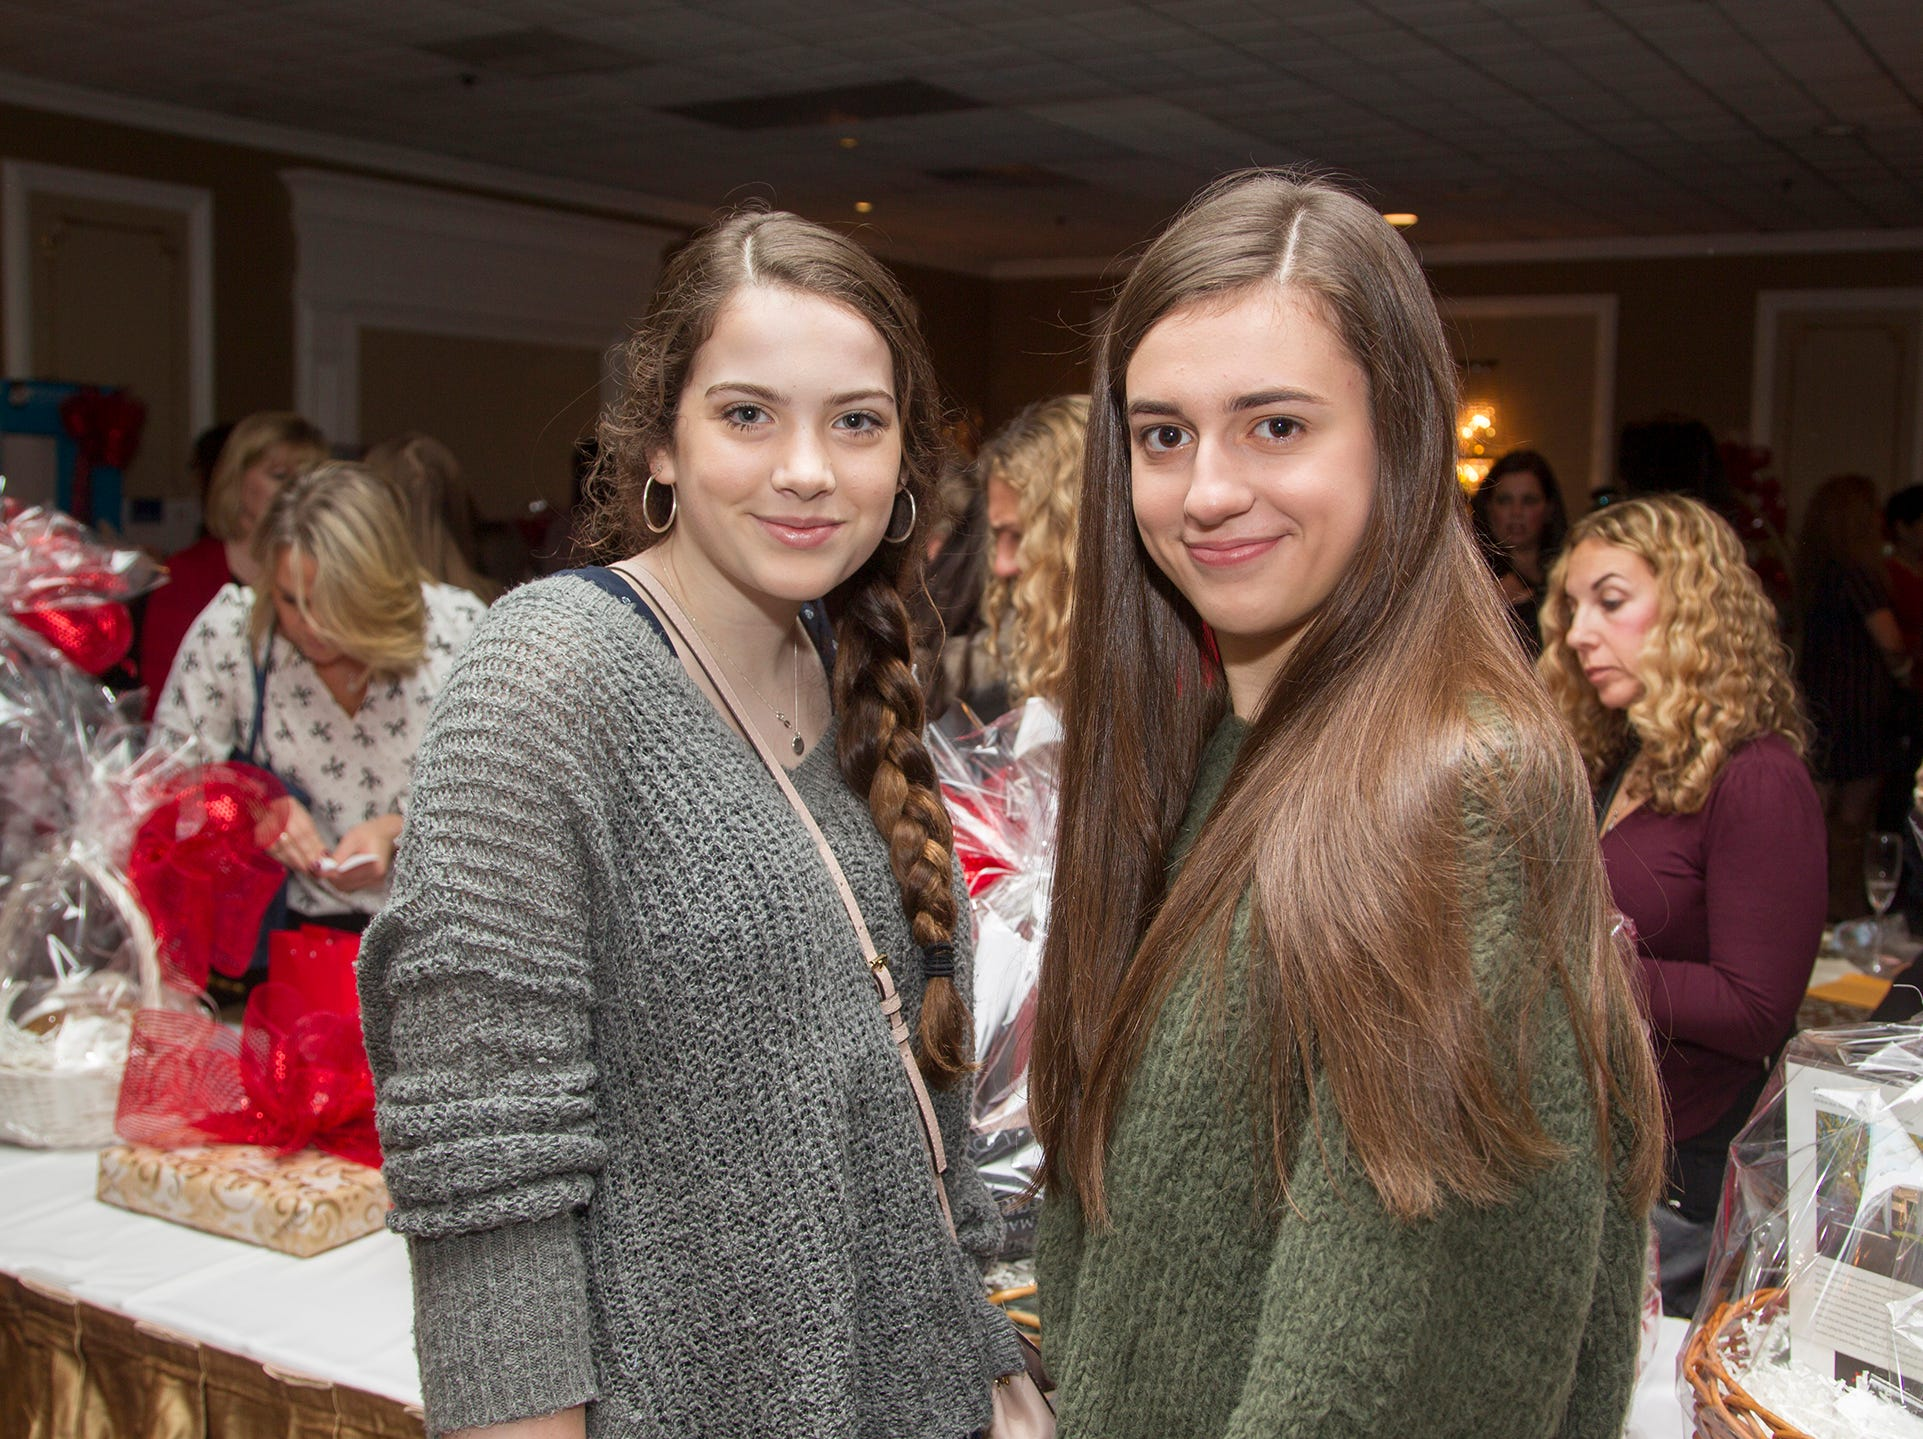 Alexandria, Elizabeth. Immaculate Heart Academy held its annual Fashion Show fundraiser at Florentine Gardens in River Vale. 12/02/2018